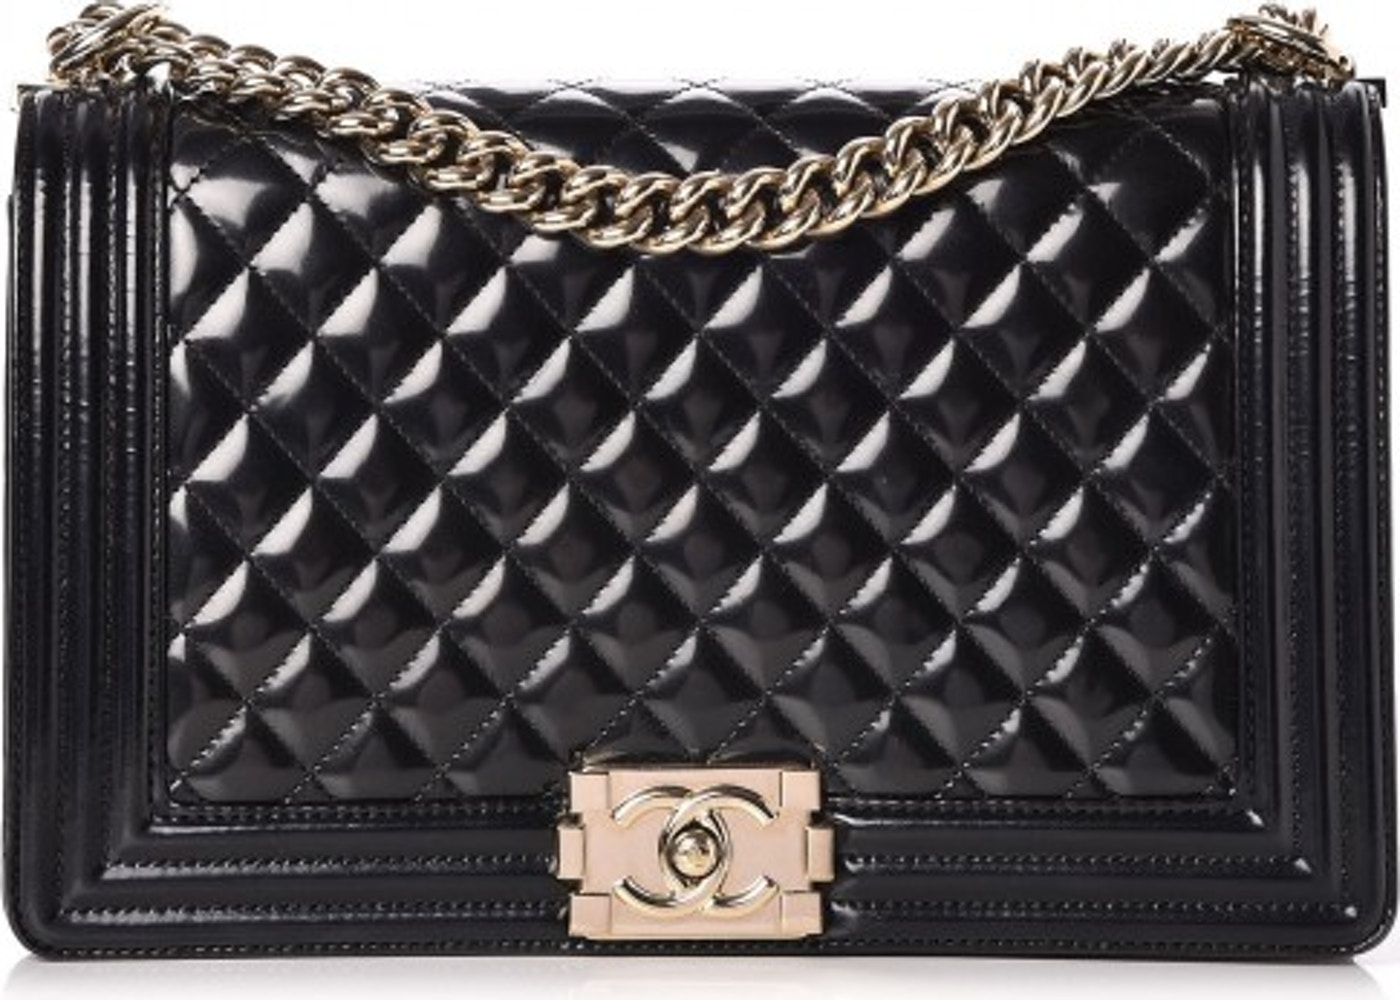 f7b8a599a60540 Chanel Boy Flap Quilted Diamond Patent Leather/Calfskin New ...